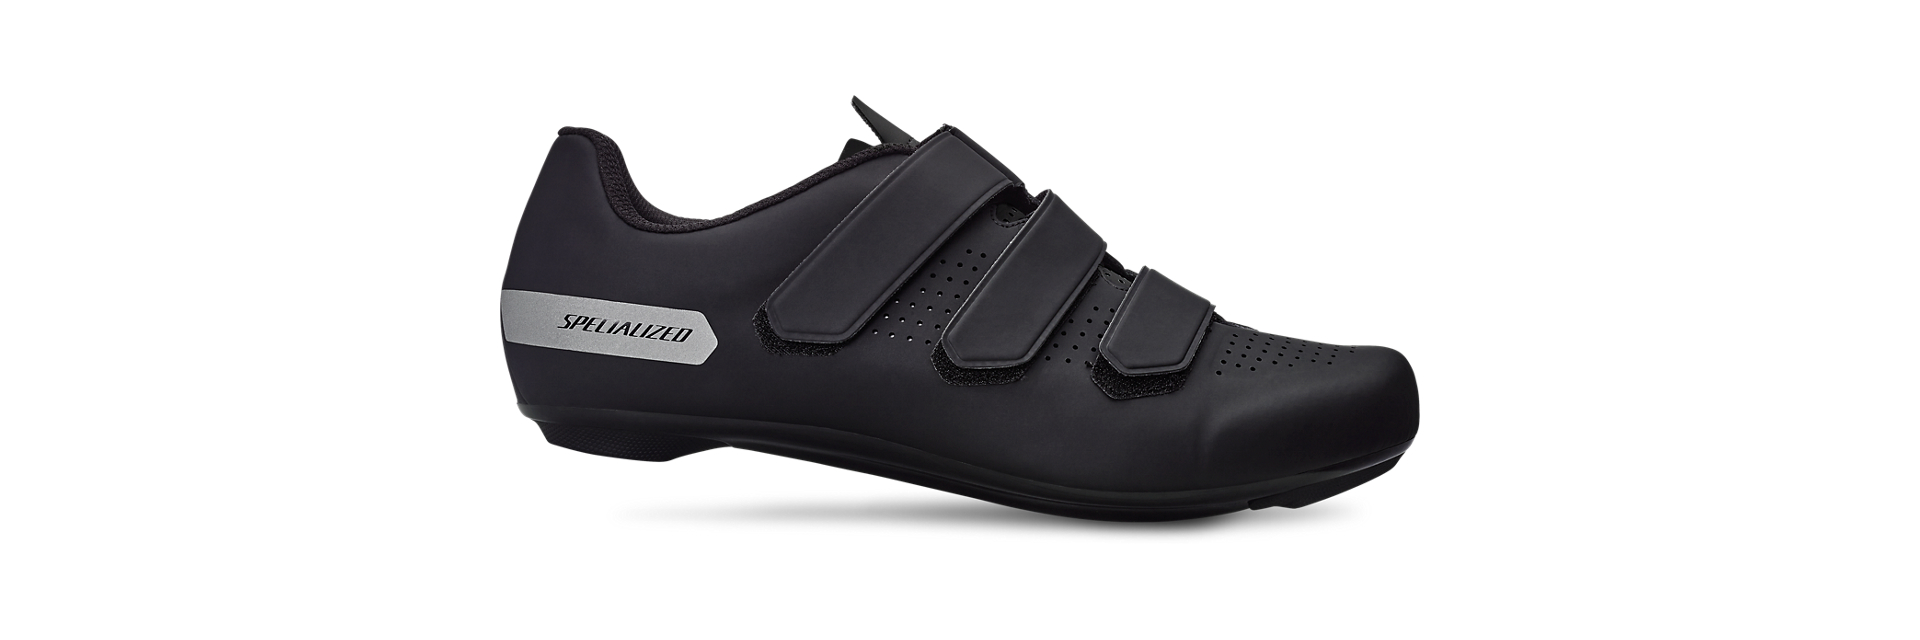 Specialized Torch 1.0 Road Shoes graphic